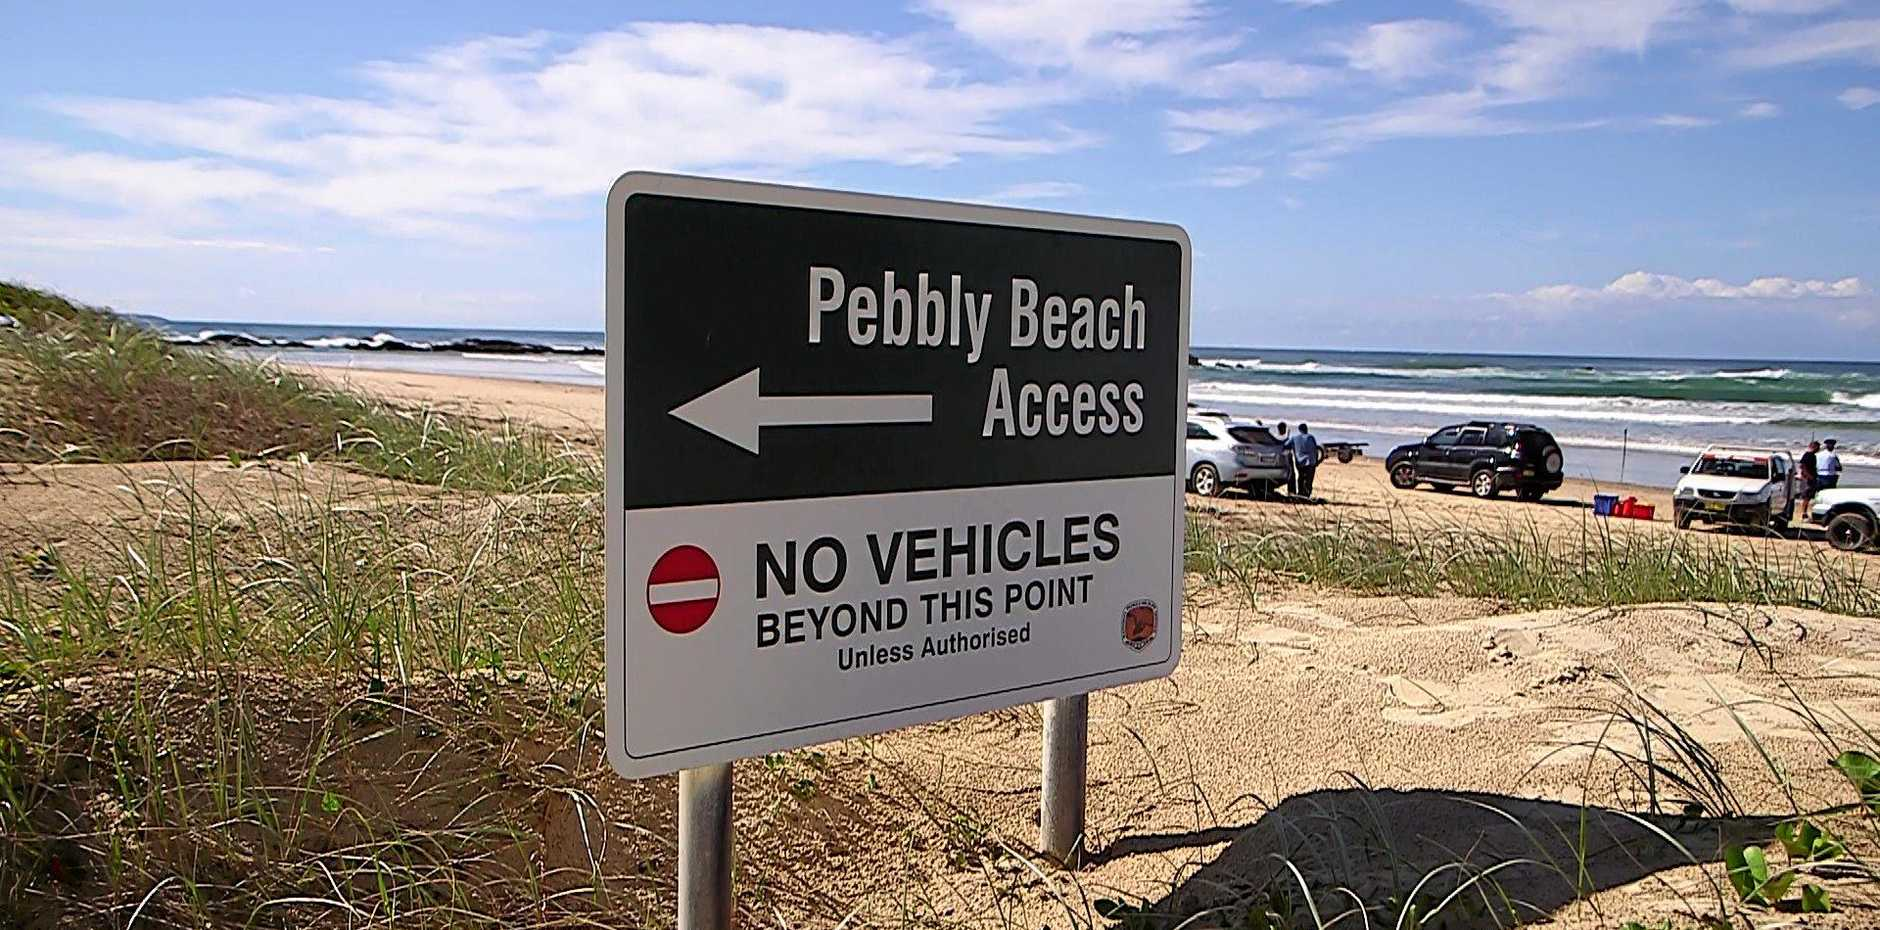 Ali Mosawi, 17, became caught in a rip at Pebbly Beach in the Yuraygir National Park, 55km north of Coffs Harbour, just before 4pm on Saturday, 15th April, 2017.